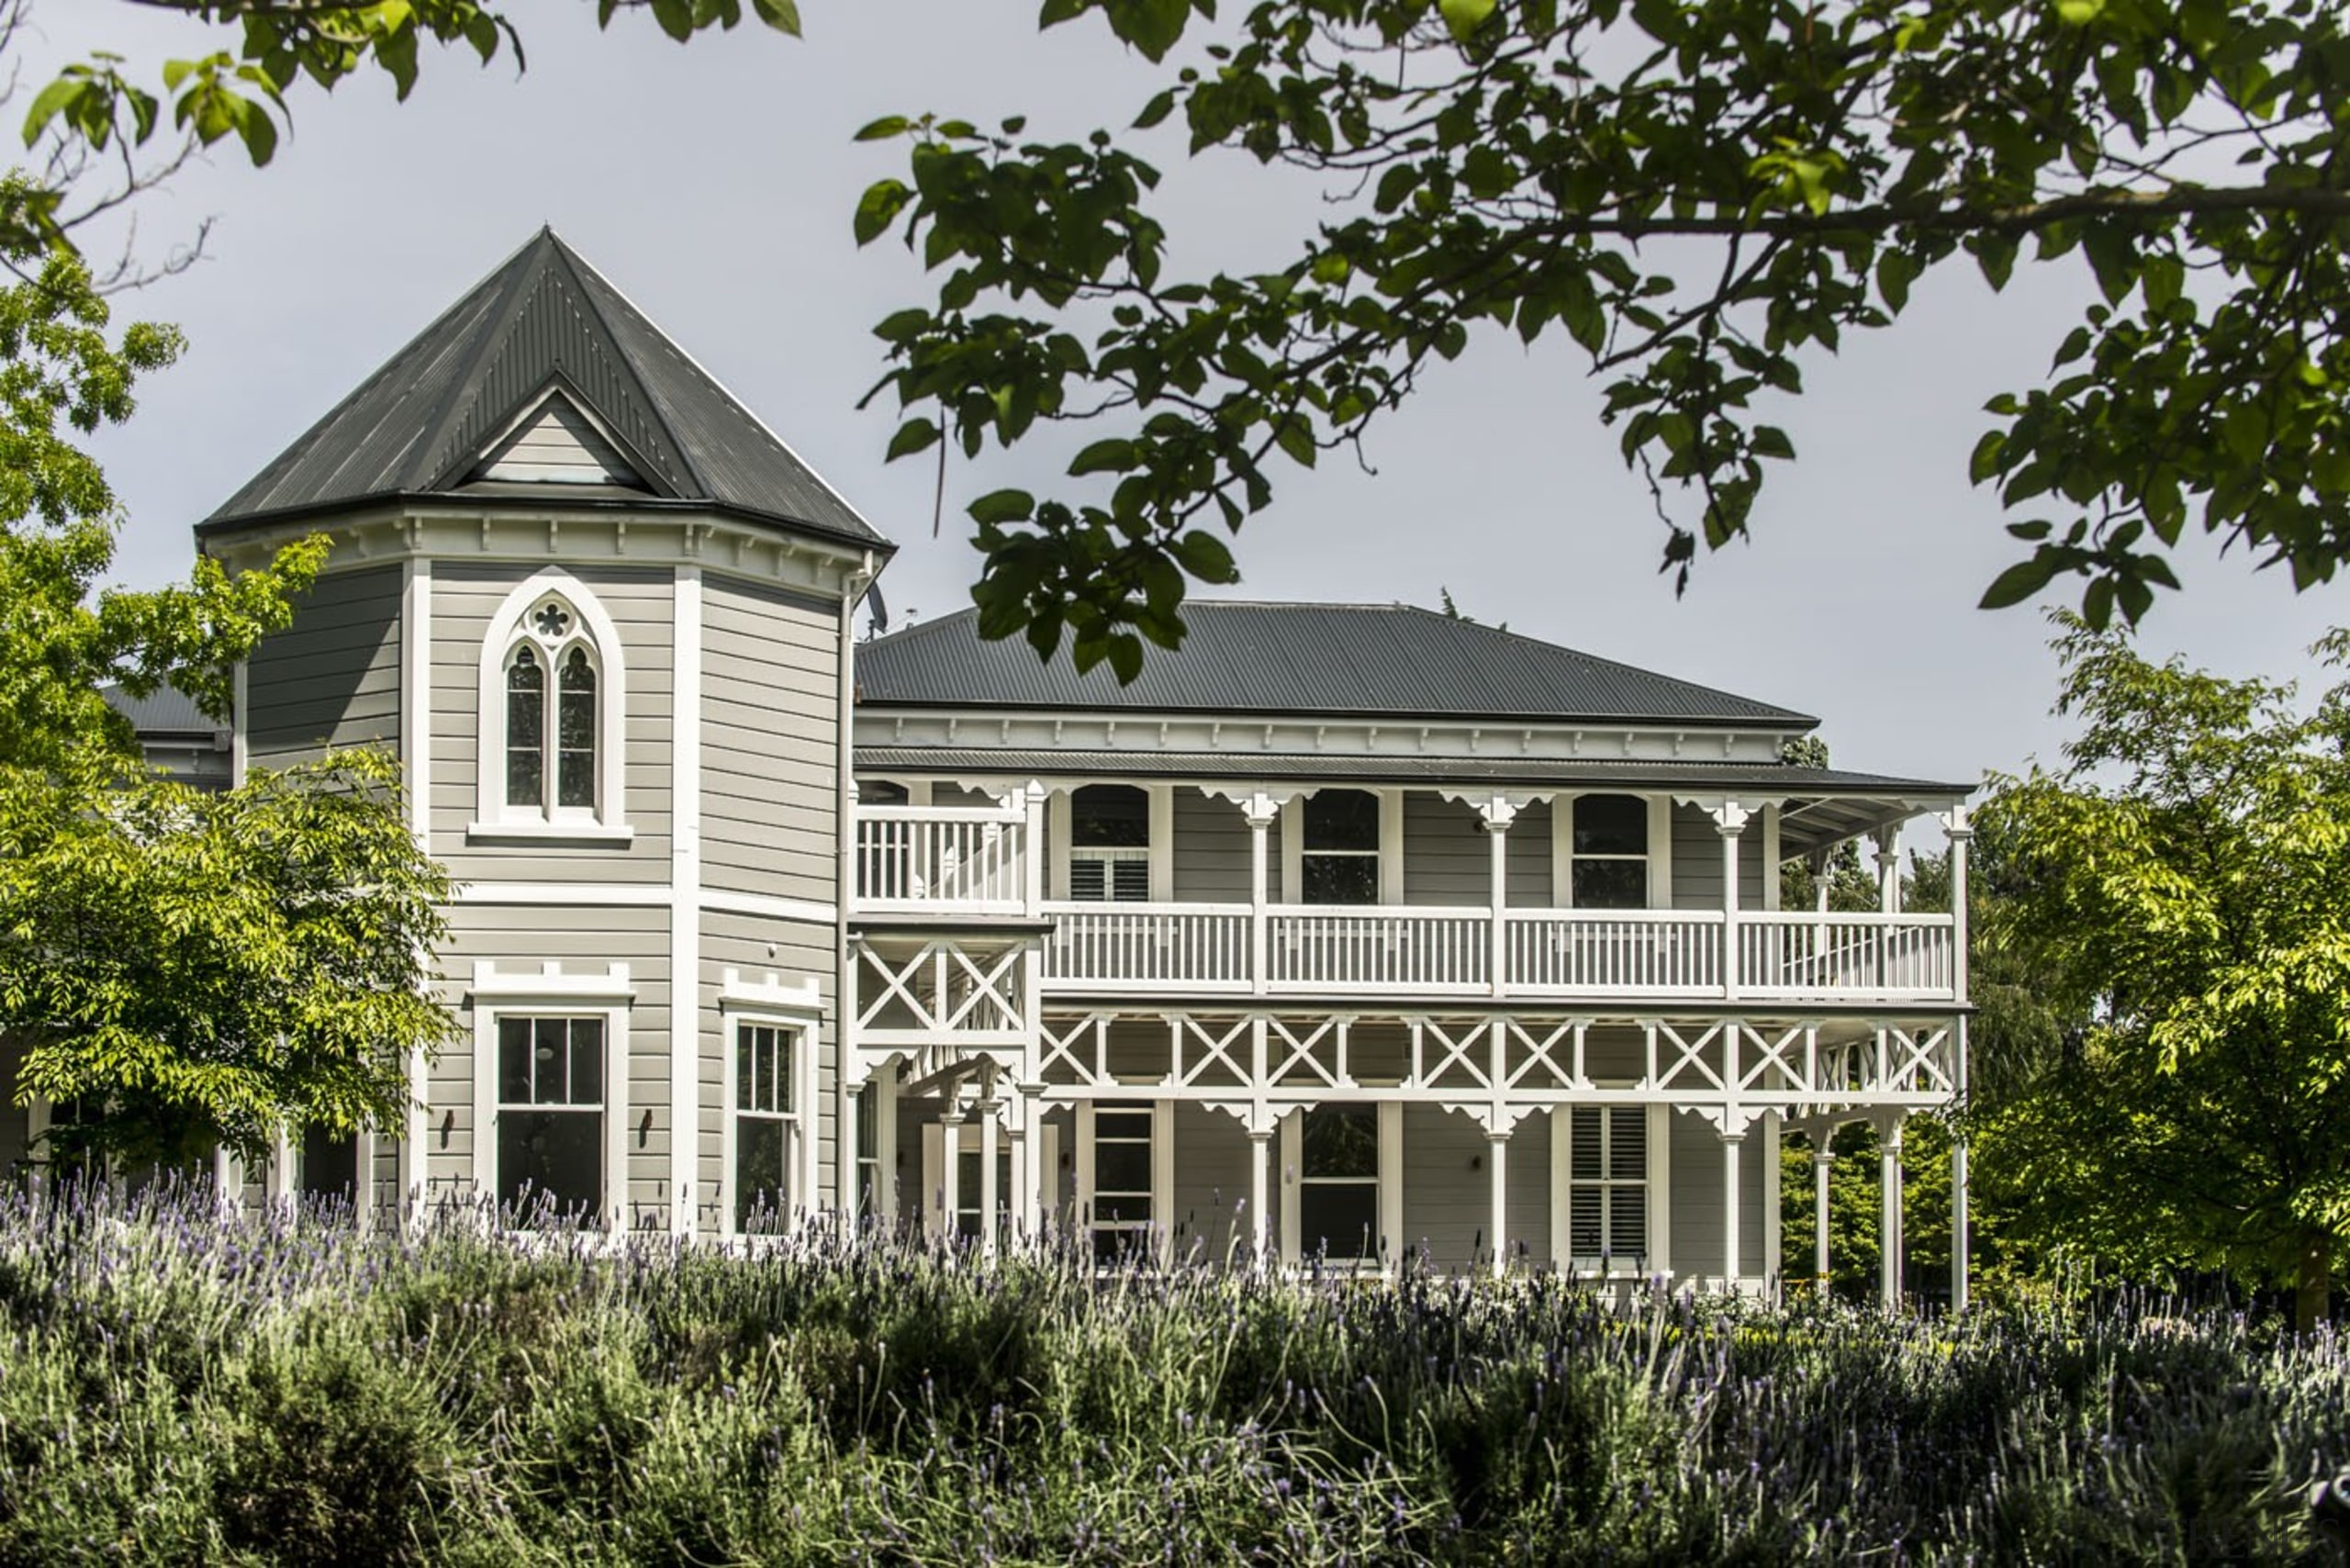 Marlborough Lodge, Blenheim, New Zealand - architecture | architecture, building, cottage, estate, farmhouse, historic house, home, house, manor house, mansion, north american fraternity and sorority housing, plantation, property, real estate, residential area, roof, tree, villa, window, gray, brown